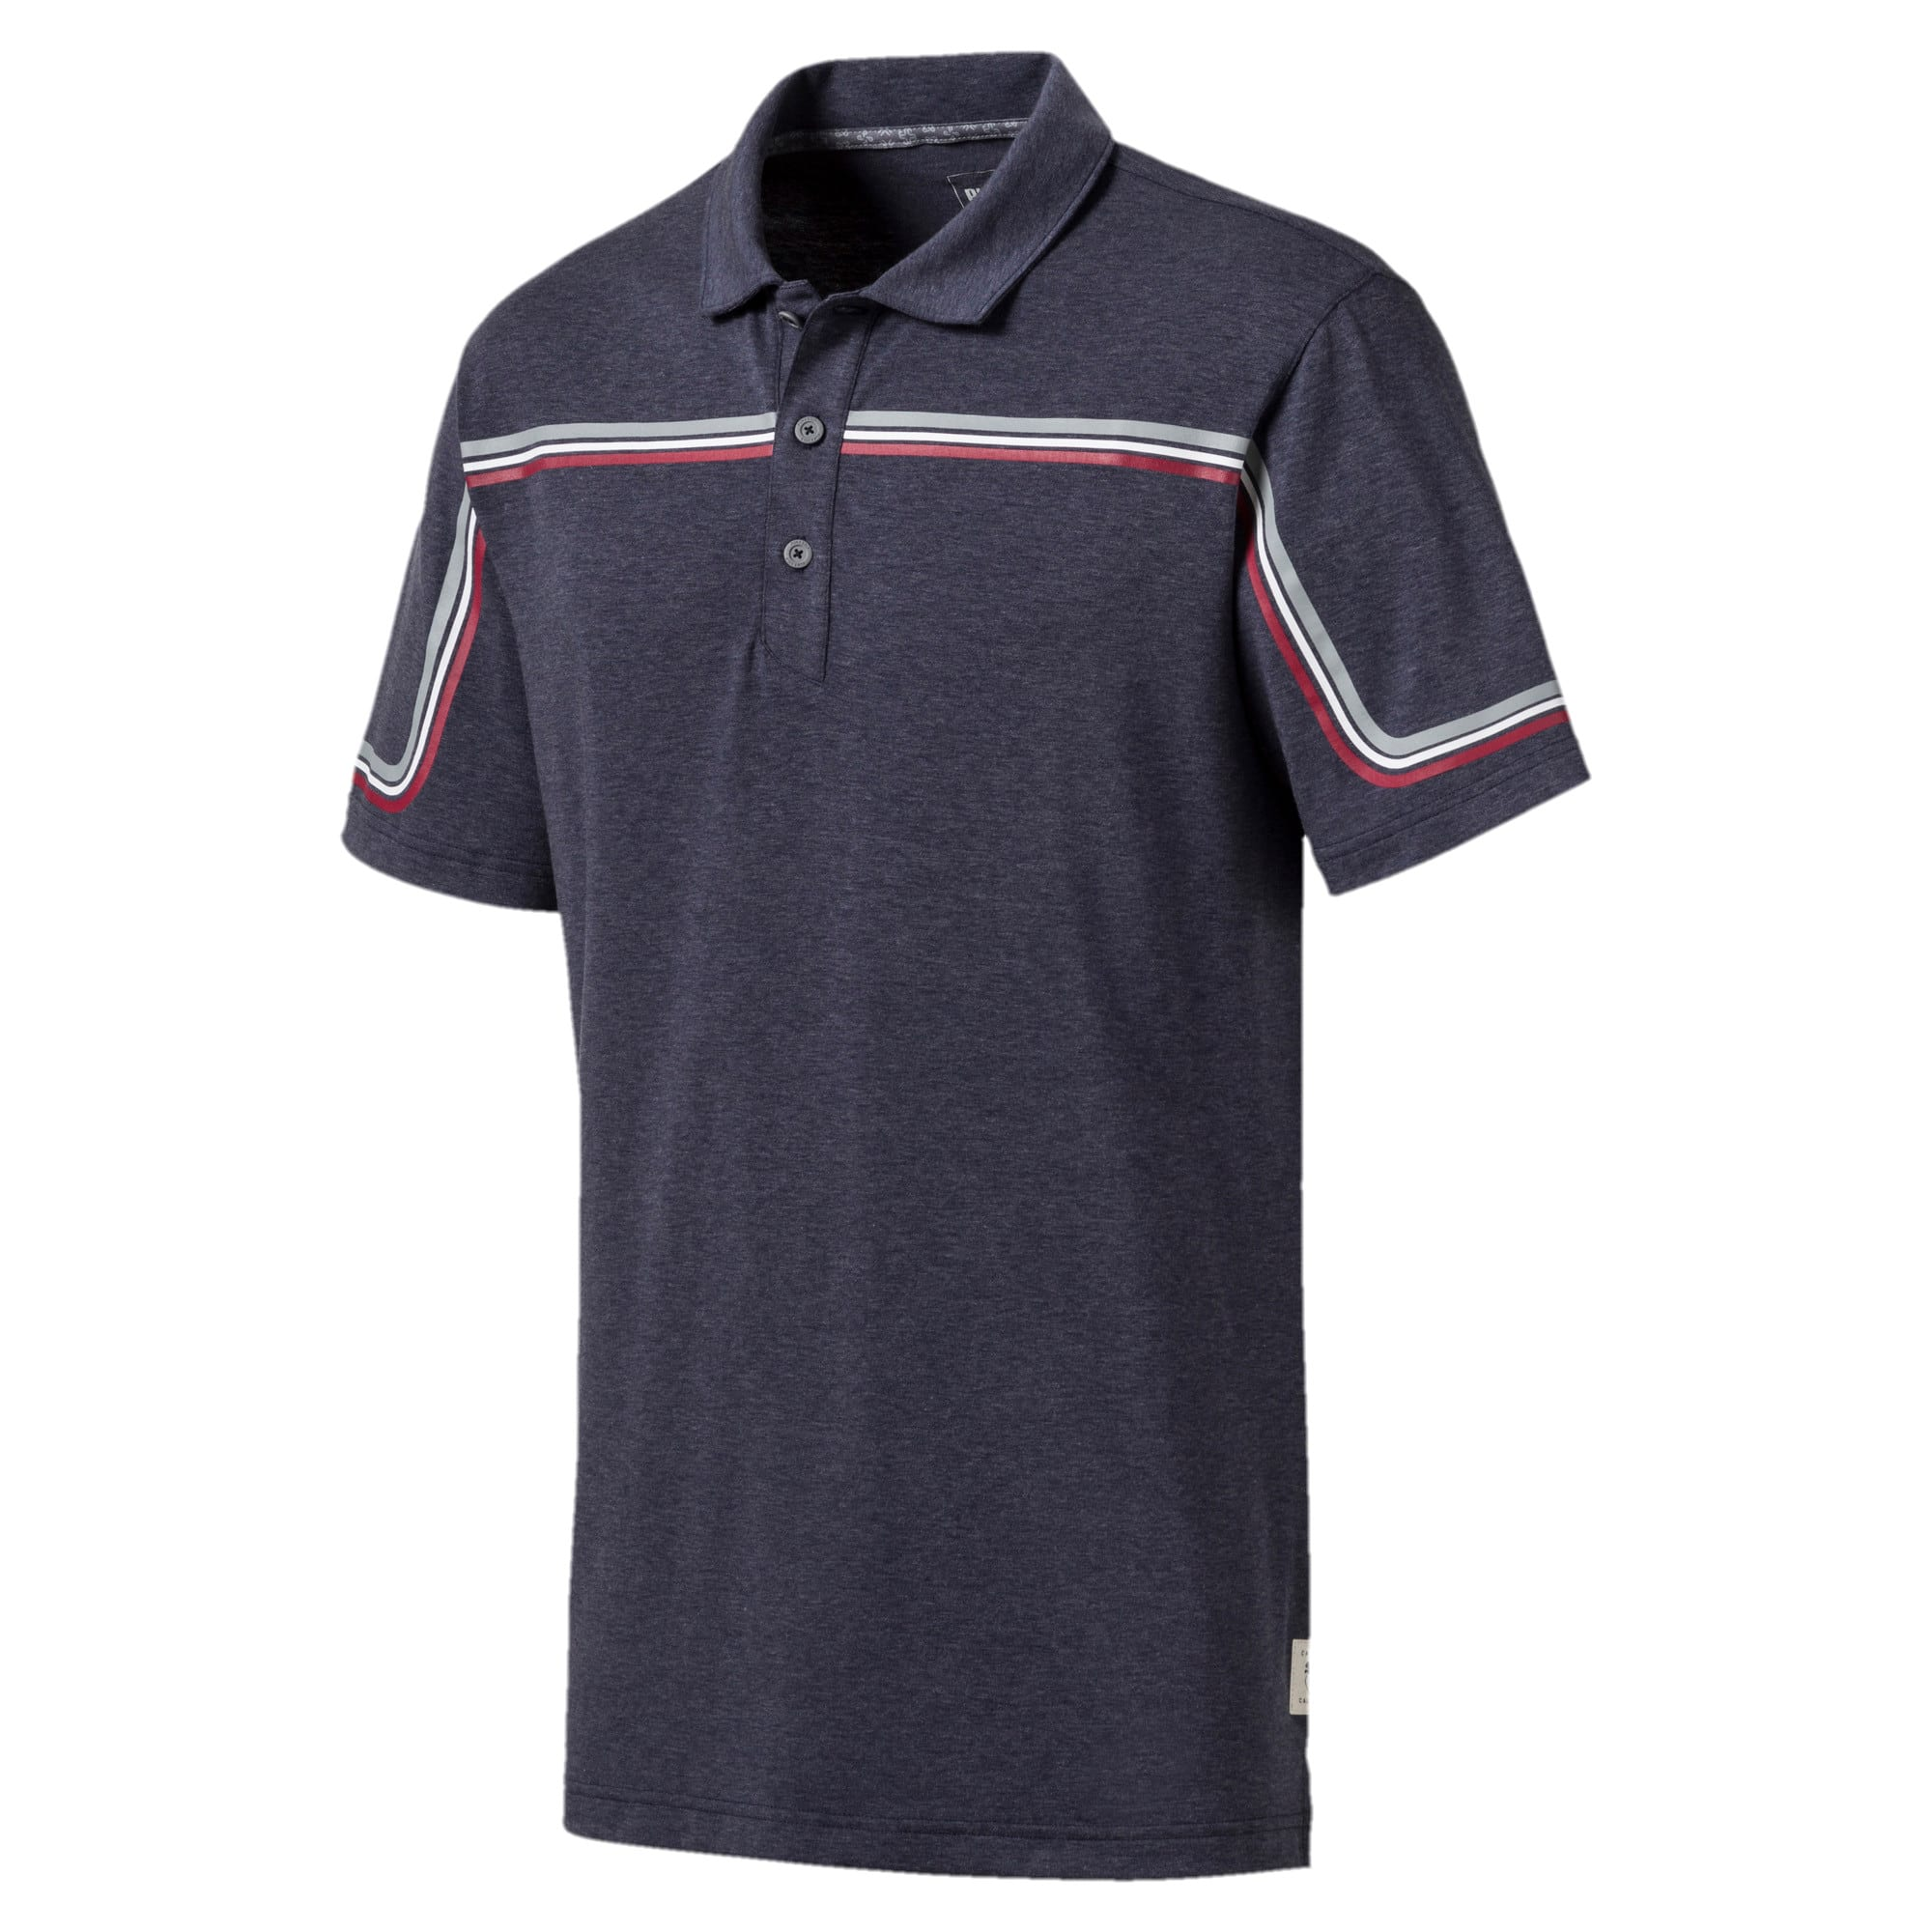 Looping Men's Golf Polo, Peacoat Heather, large